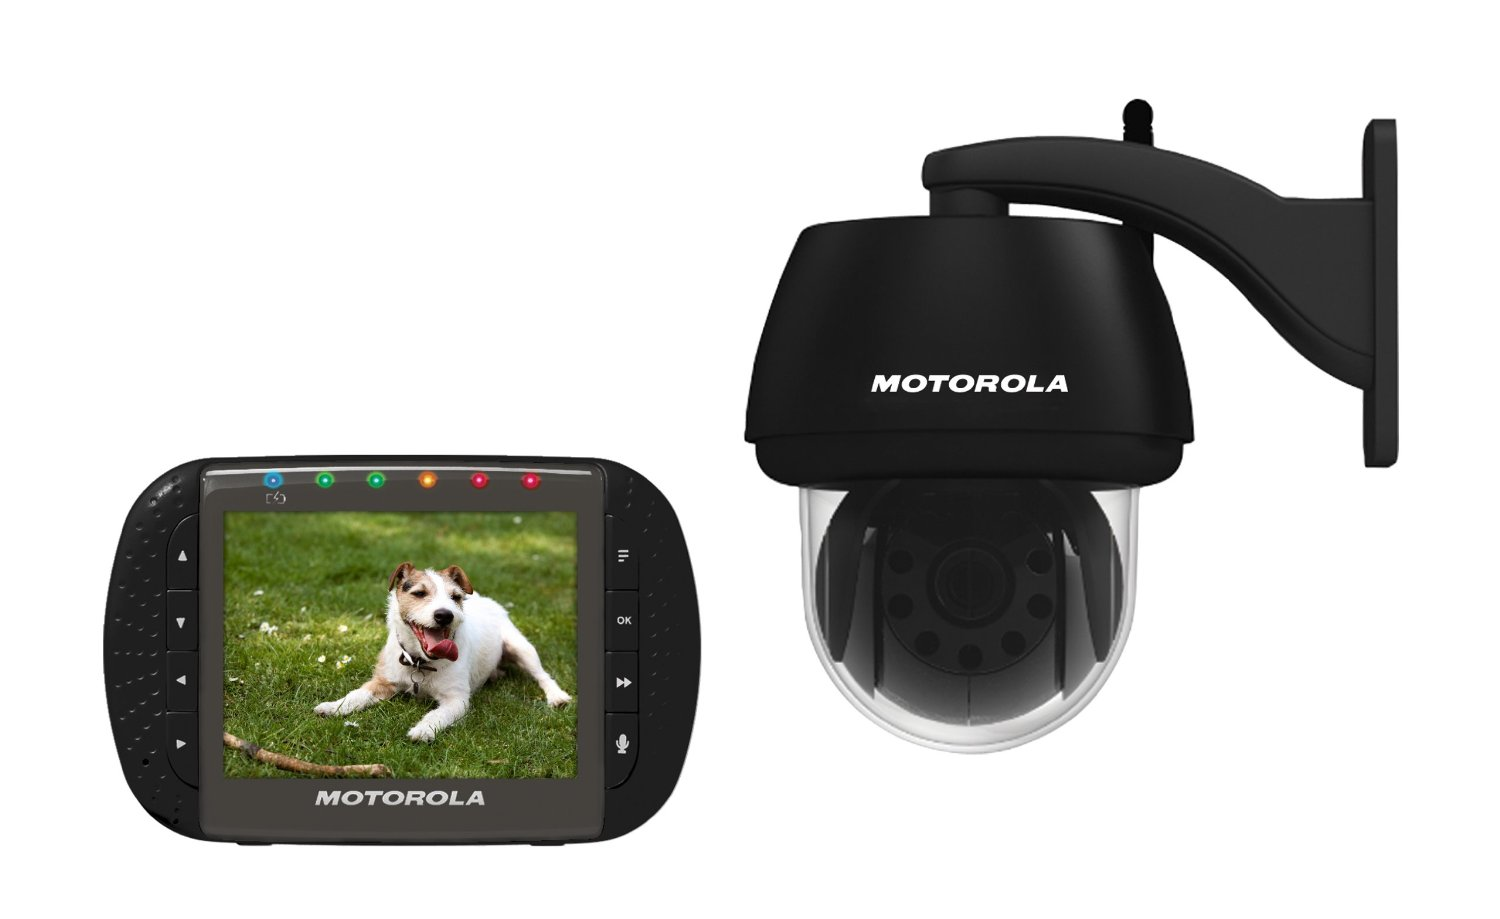 Motorola Wireless Security Systems